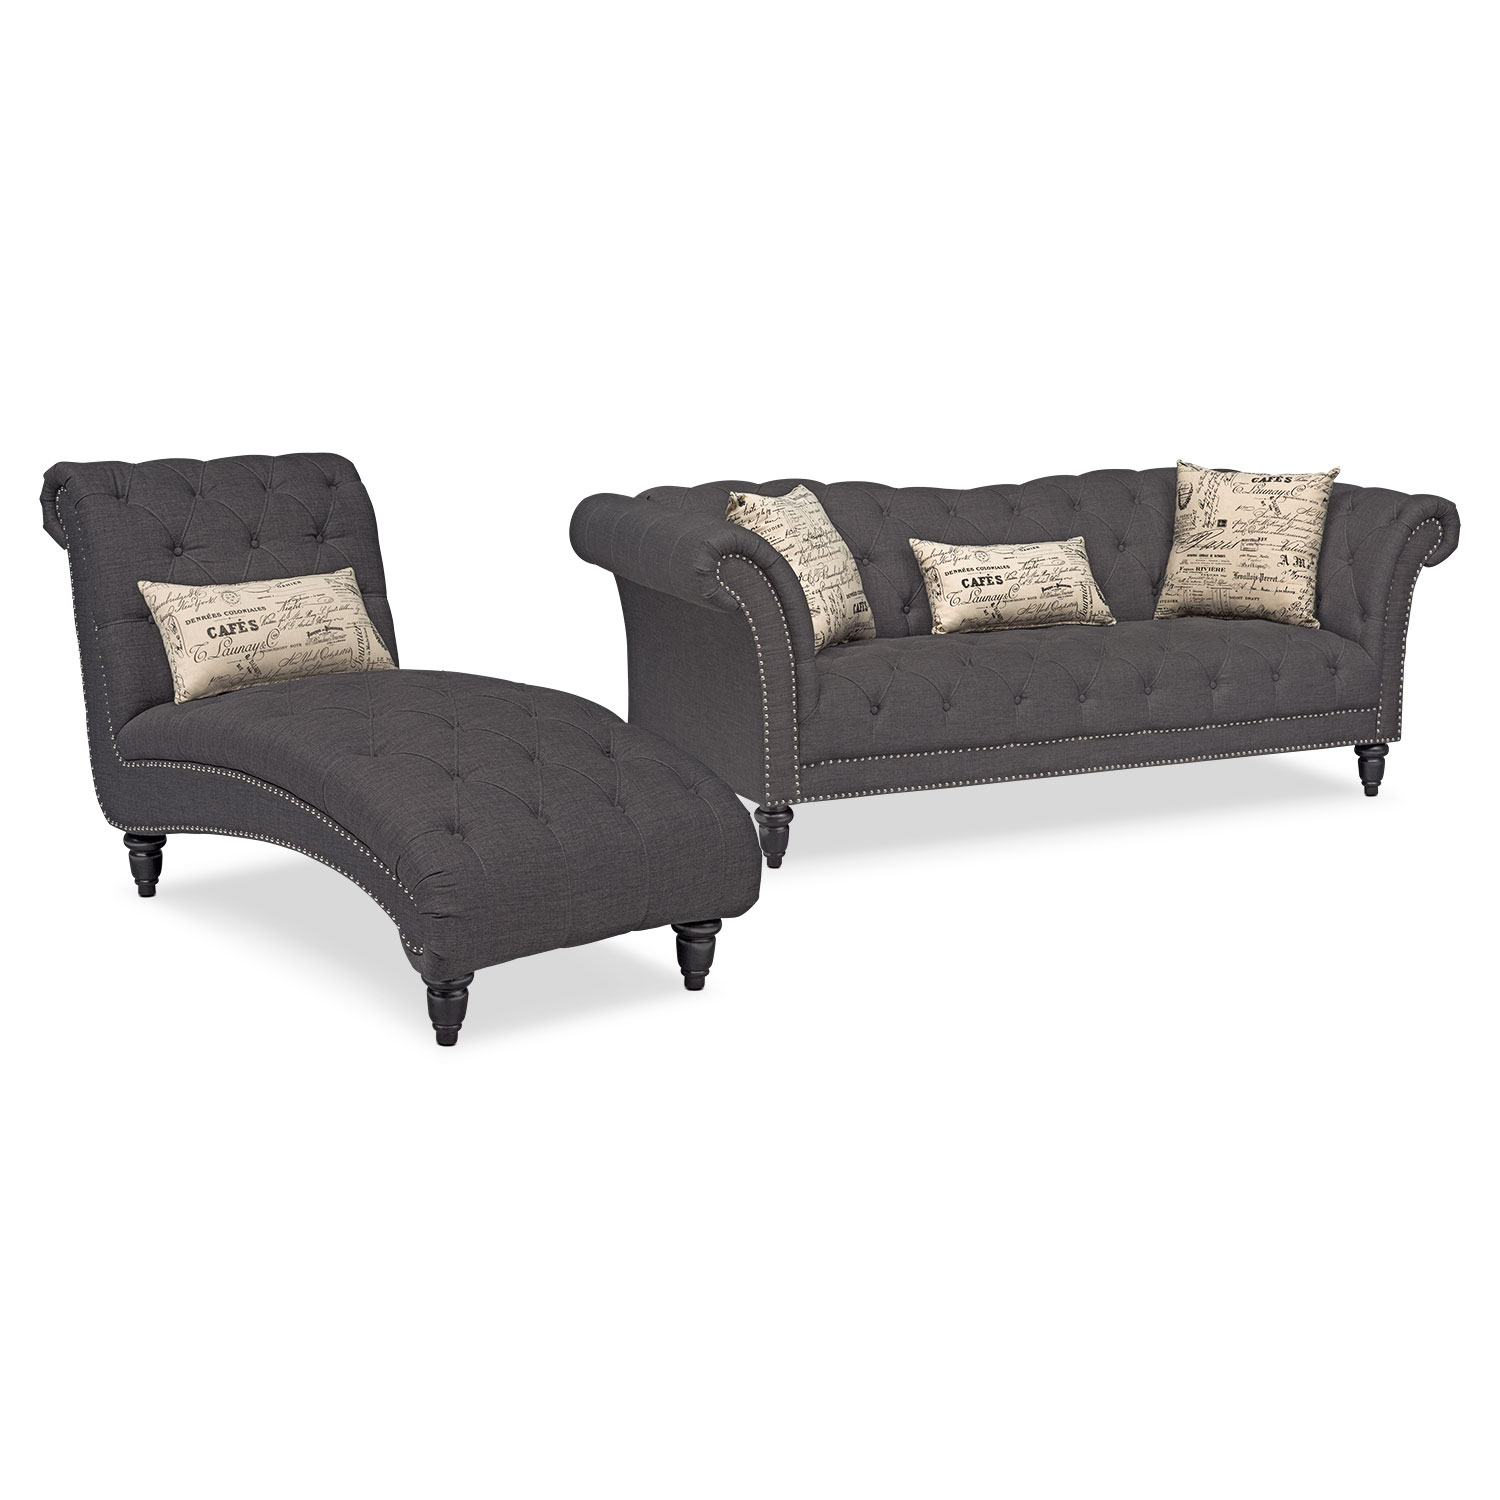 Marisol Sofa And Chaise Set Charcoal Value City Furniture